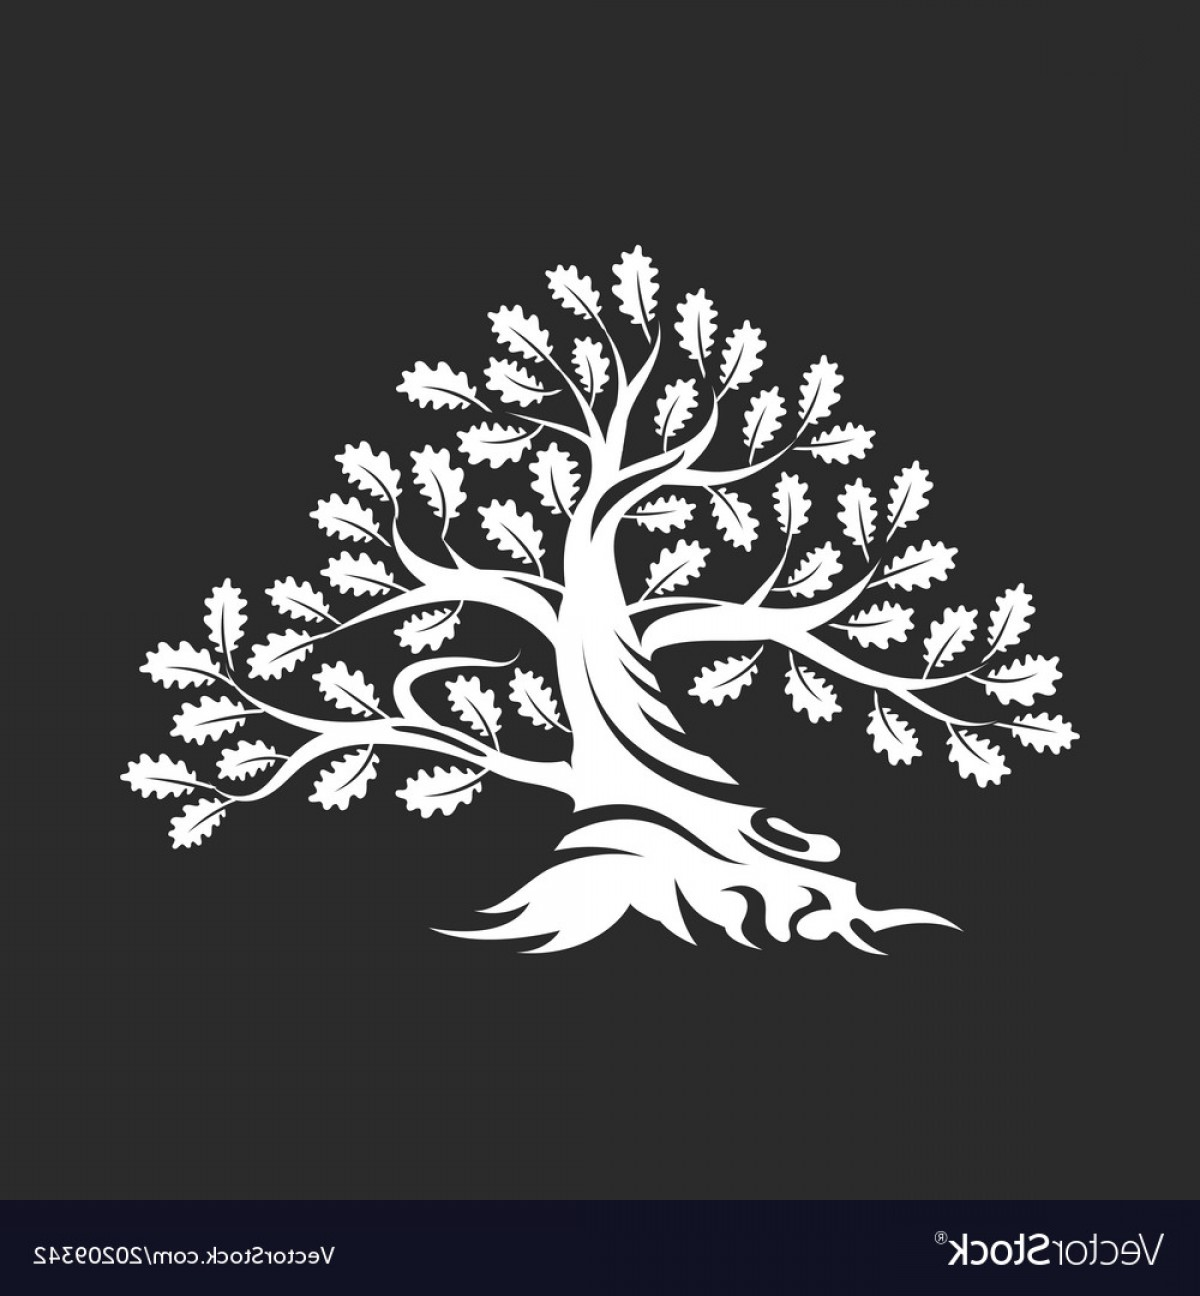 Oak Tree Silhouette Vector Graphics: Huge And Sacred Oak Tree Silhouette Logo Vector